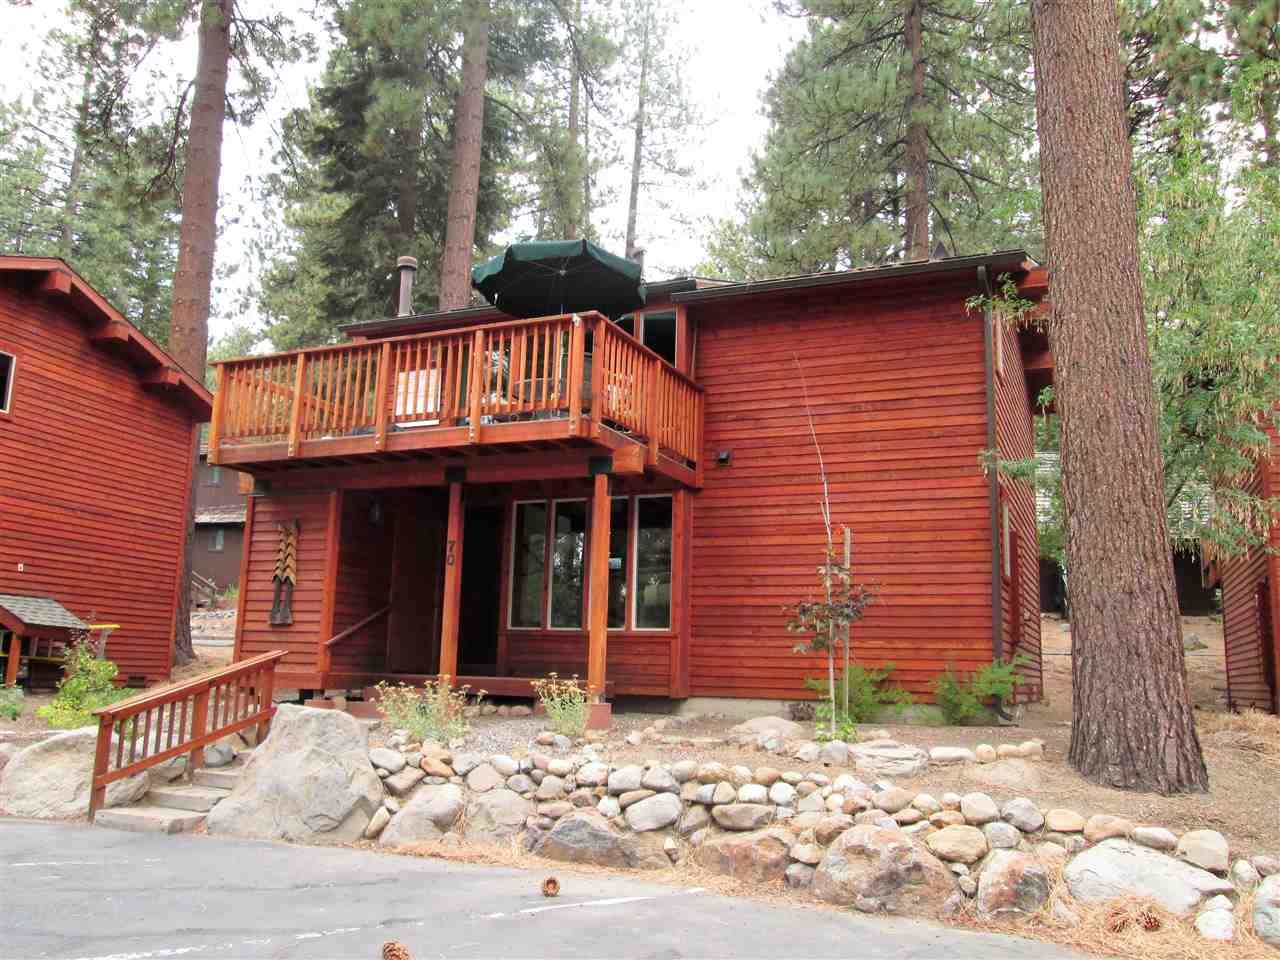 Condo / Townhouse for Active at 702 College Drive 702 College Drive Incline Village, Nevada 89451 United States